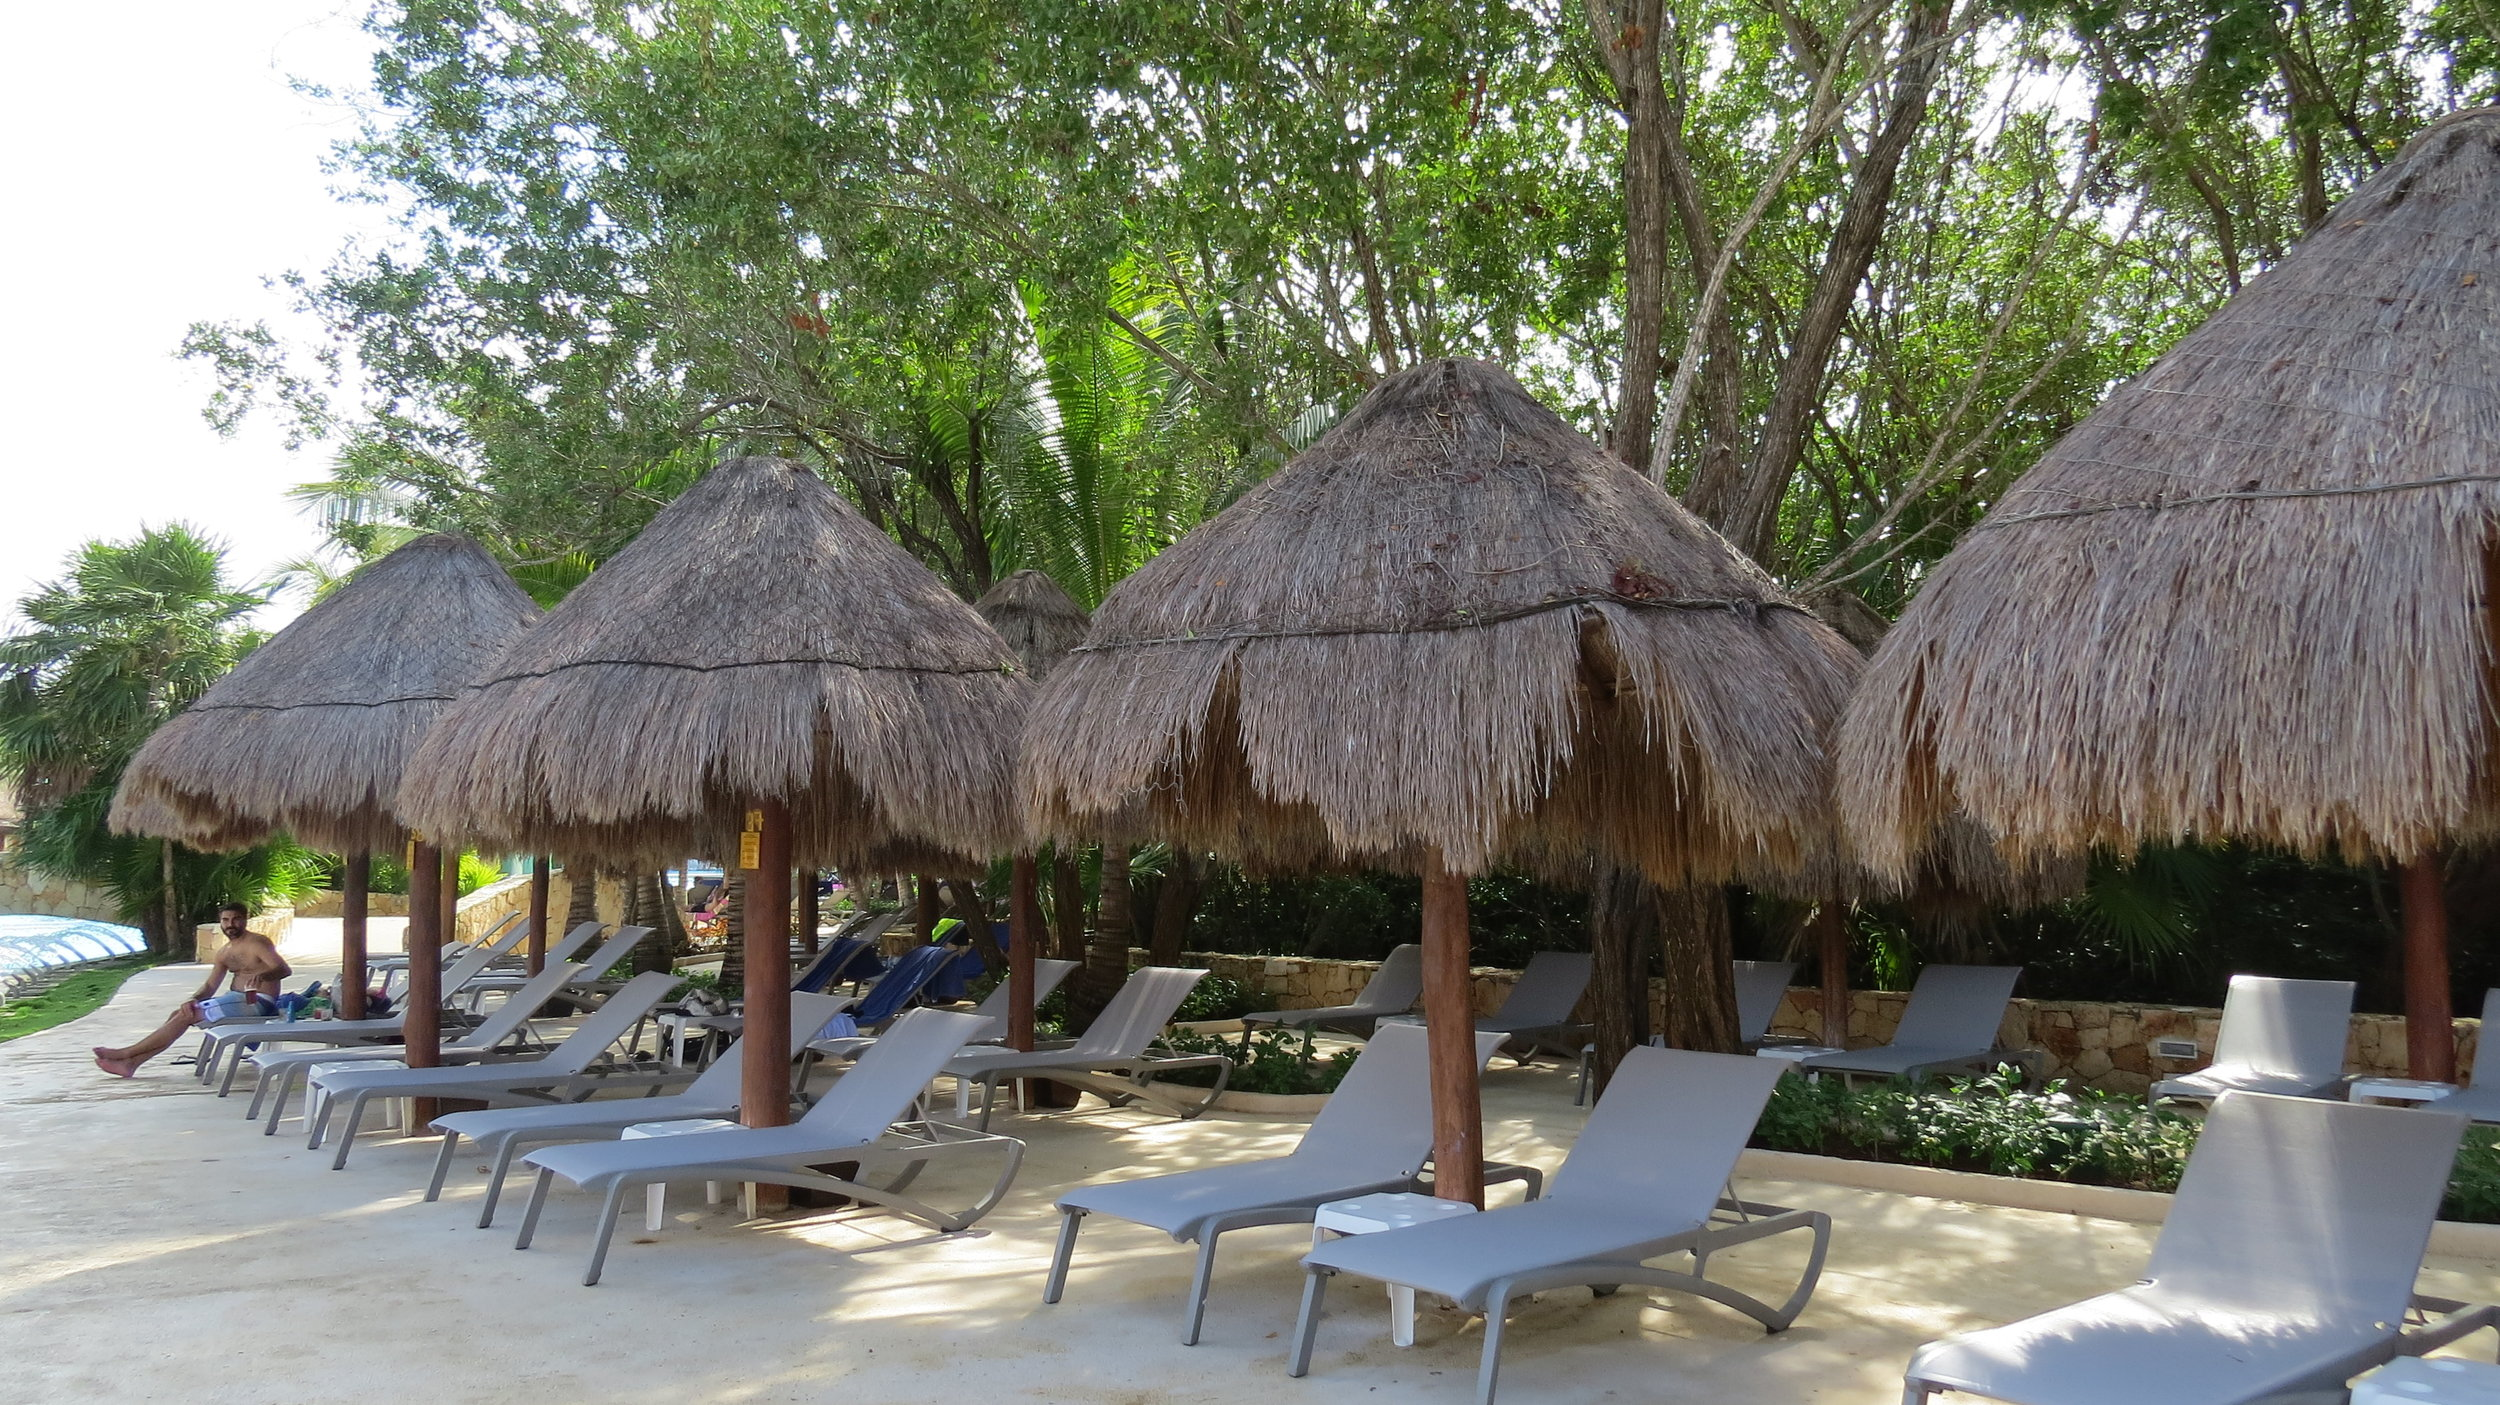 Recent picture from Iberostar Pariso complex in Cancun, Mexico